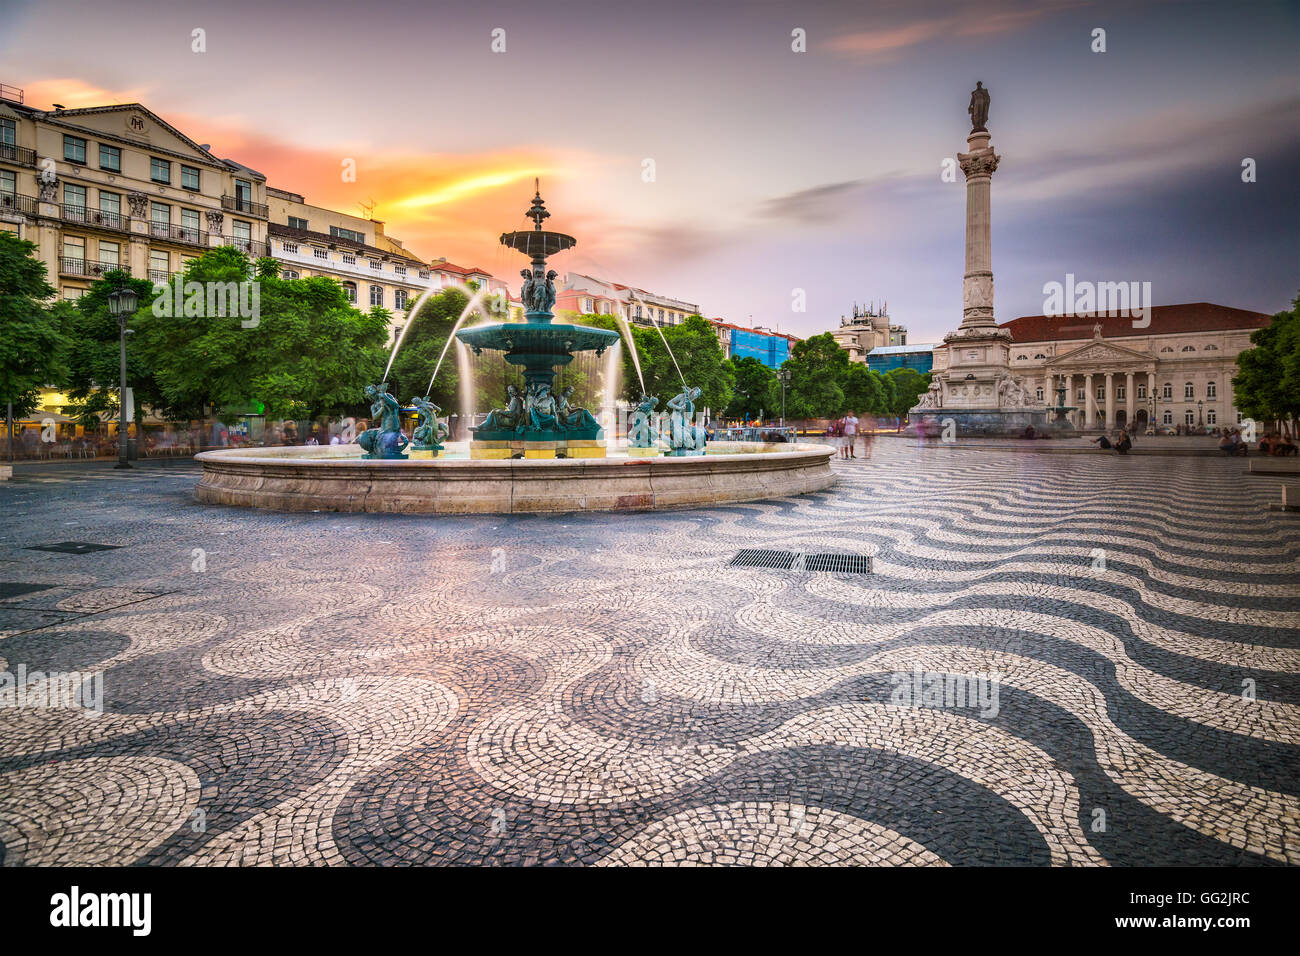 Lisbon, Portugal cityscape at Rossio Square. Stock Photo